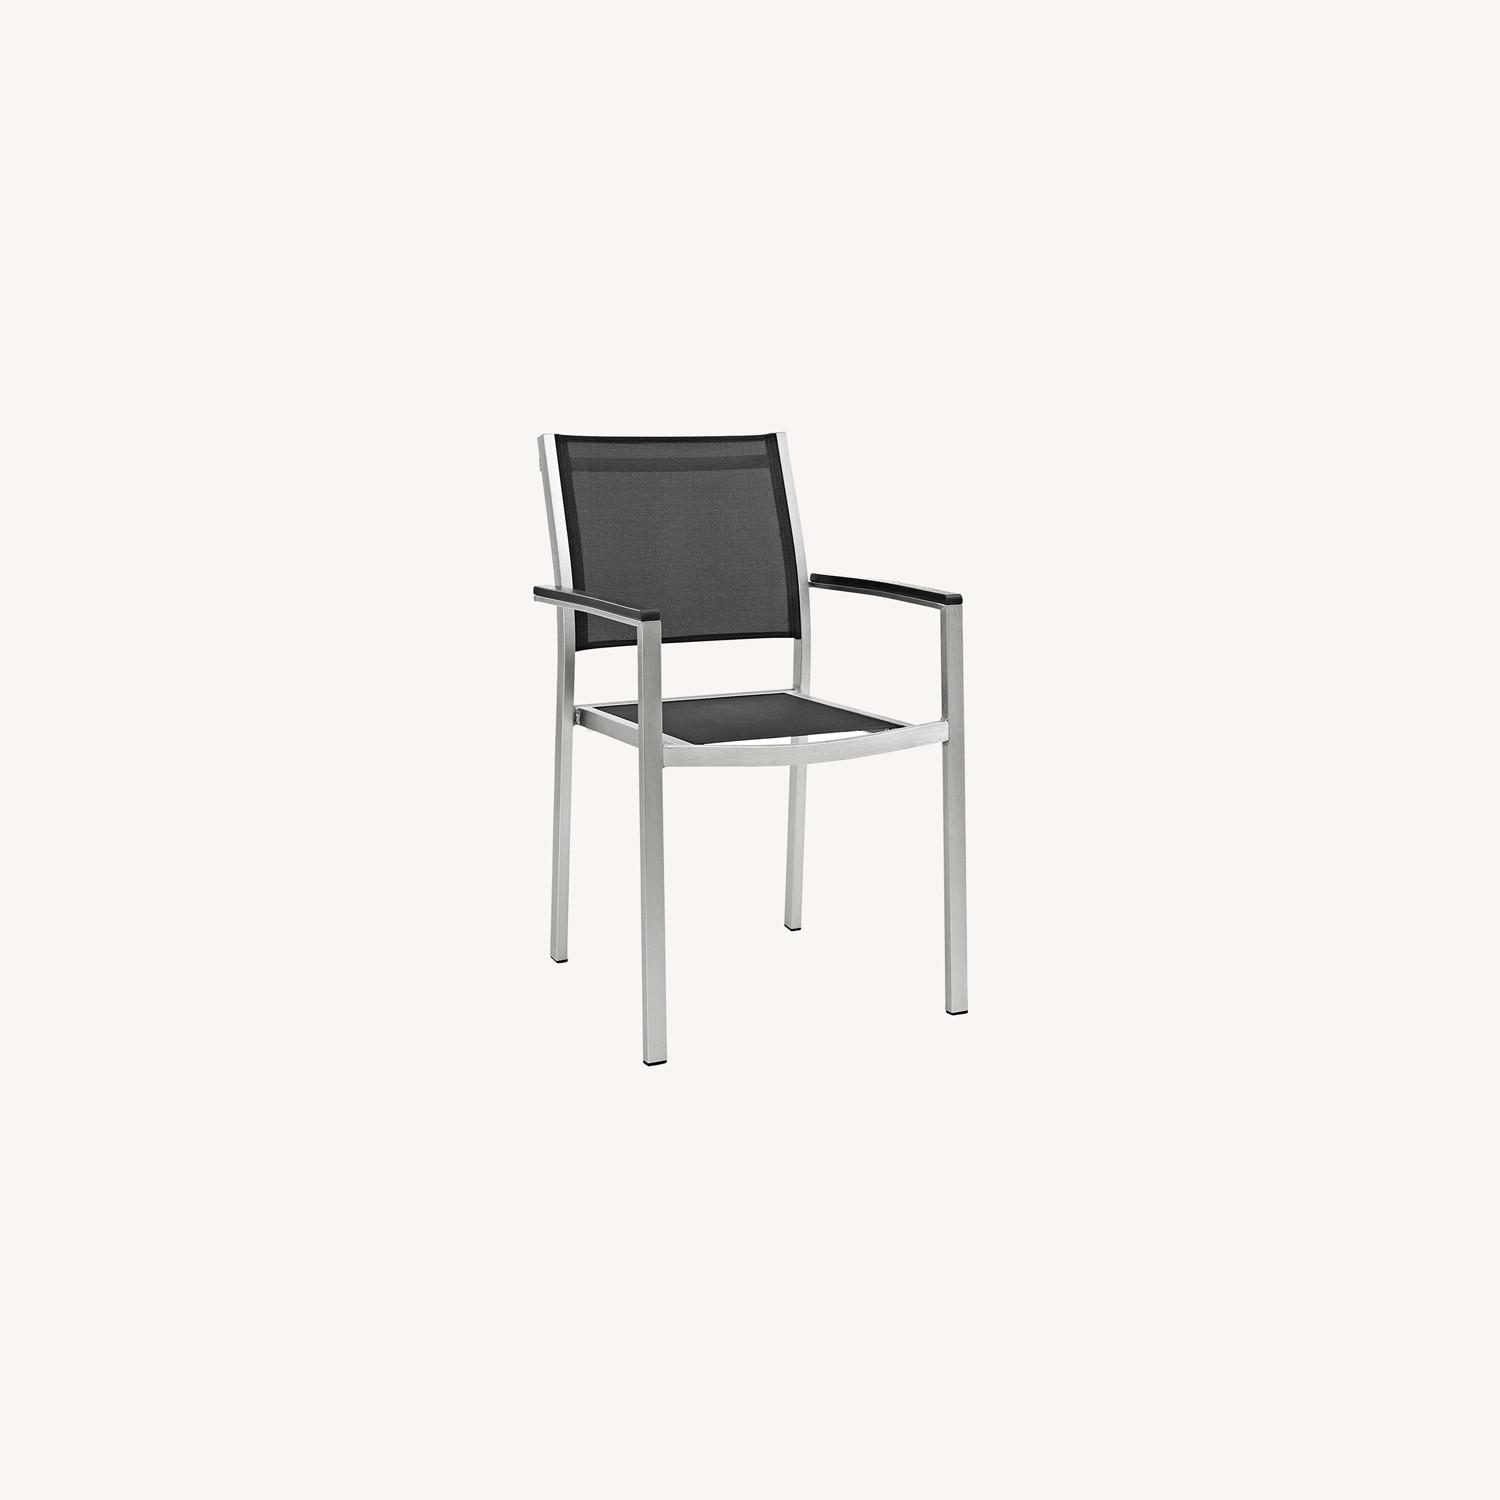 Outdoor Dining Chair In Black Mesh Finish - image-5